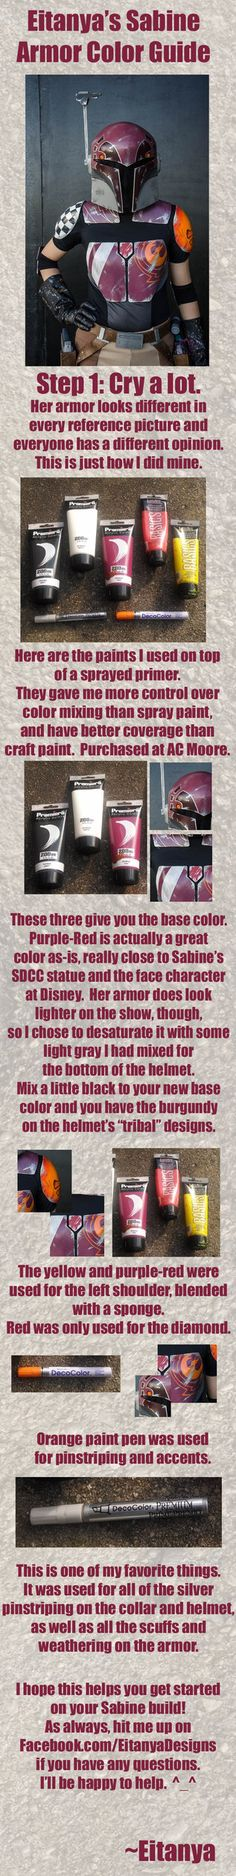 Eitanya's guide to Sabine armor colors by eitanya on DeviantArt